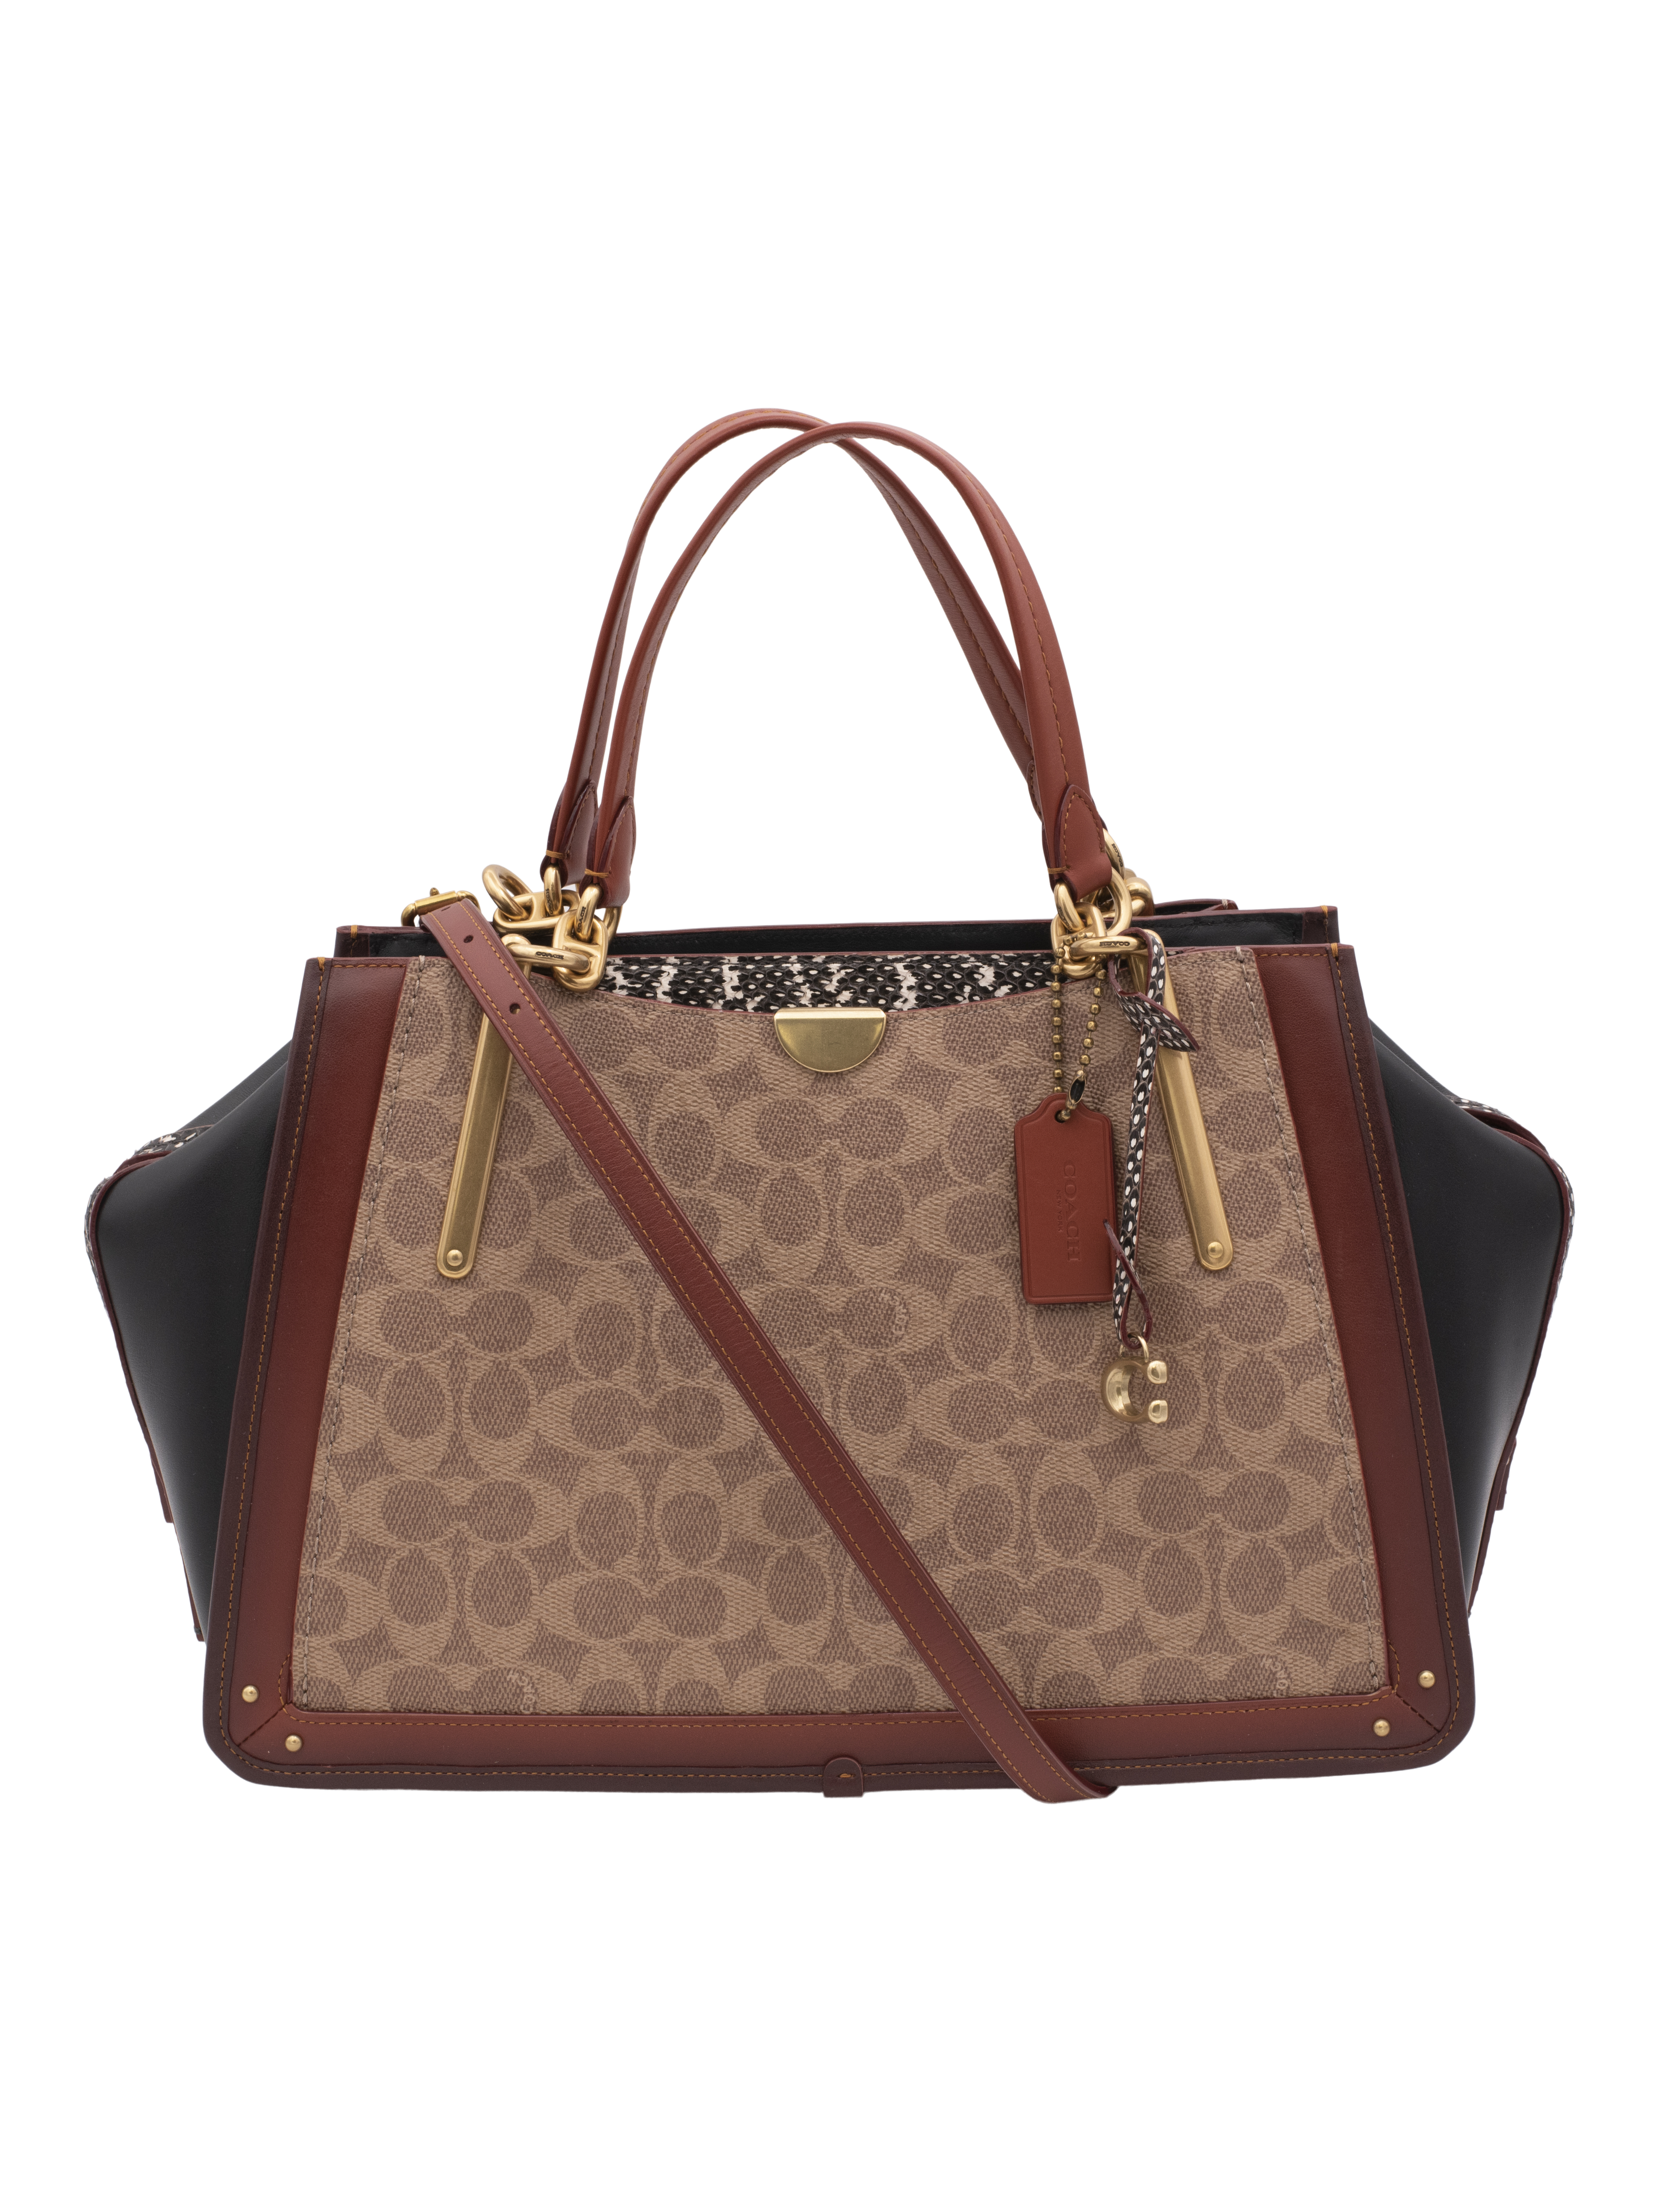 Coach Dreamer 36 in Signature Canvas with Snakeskin detail Handbag